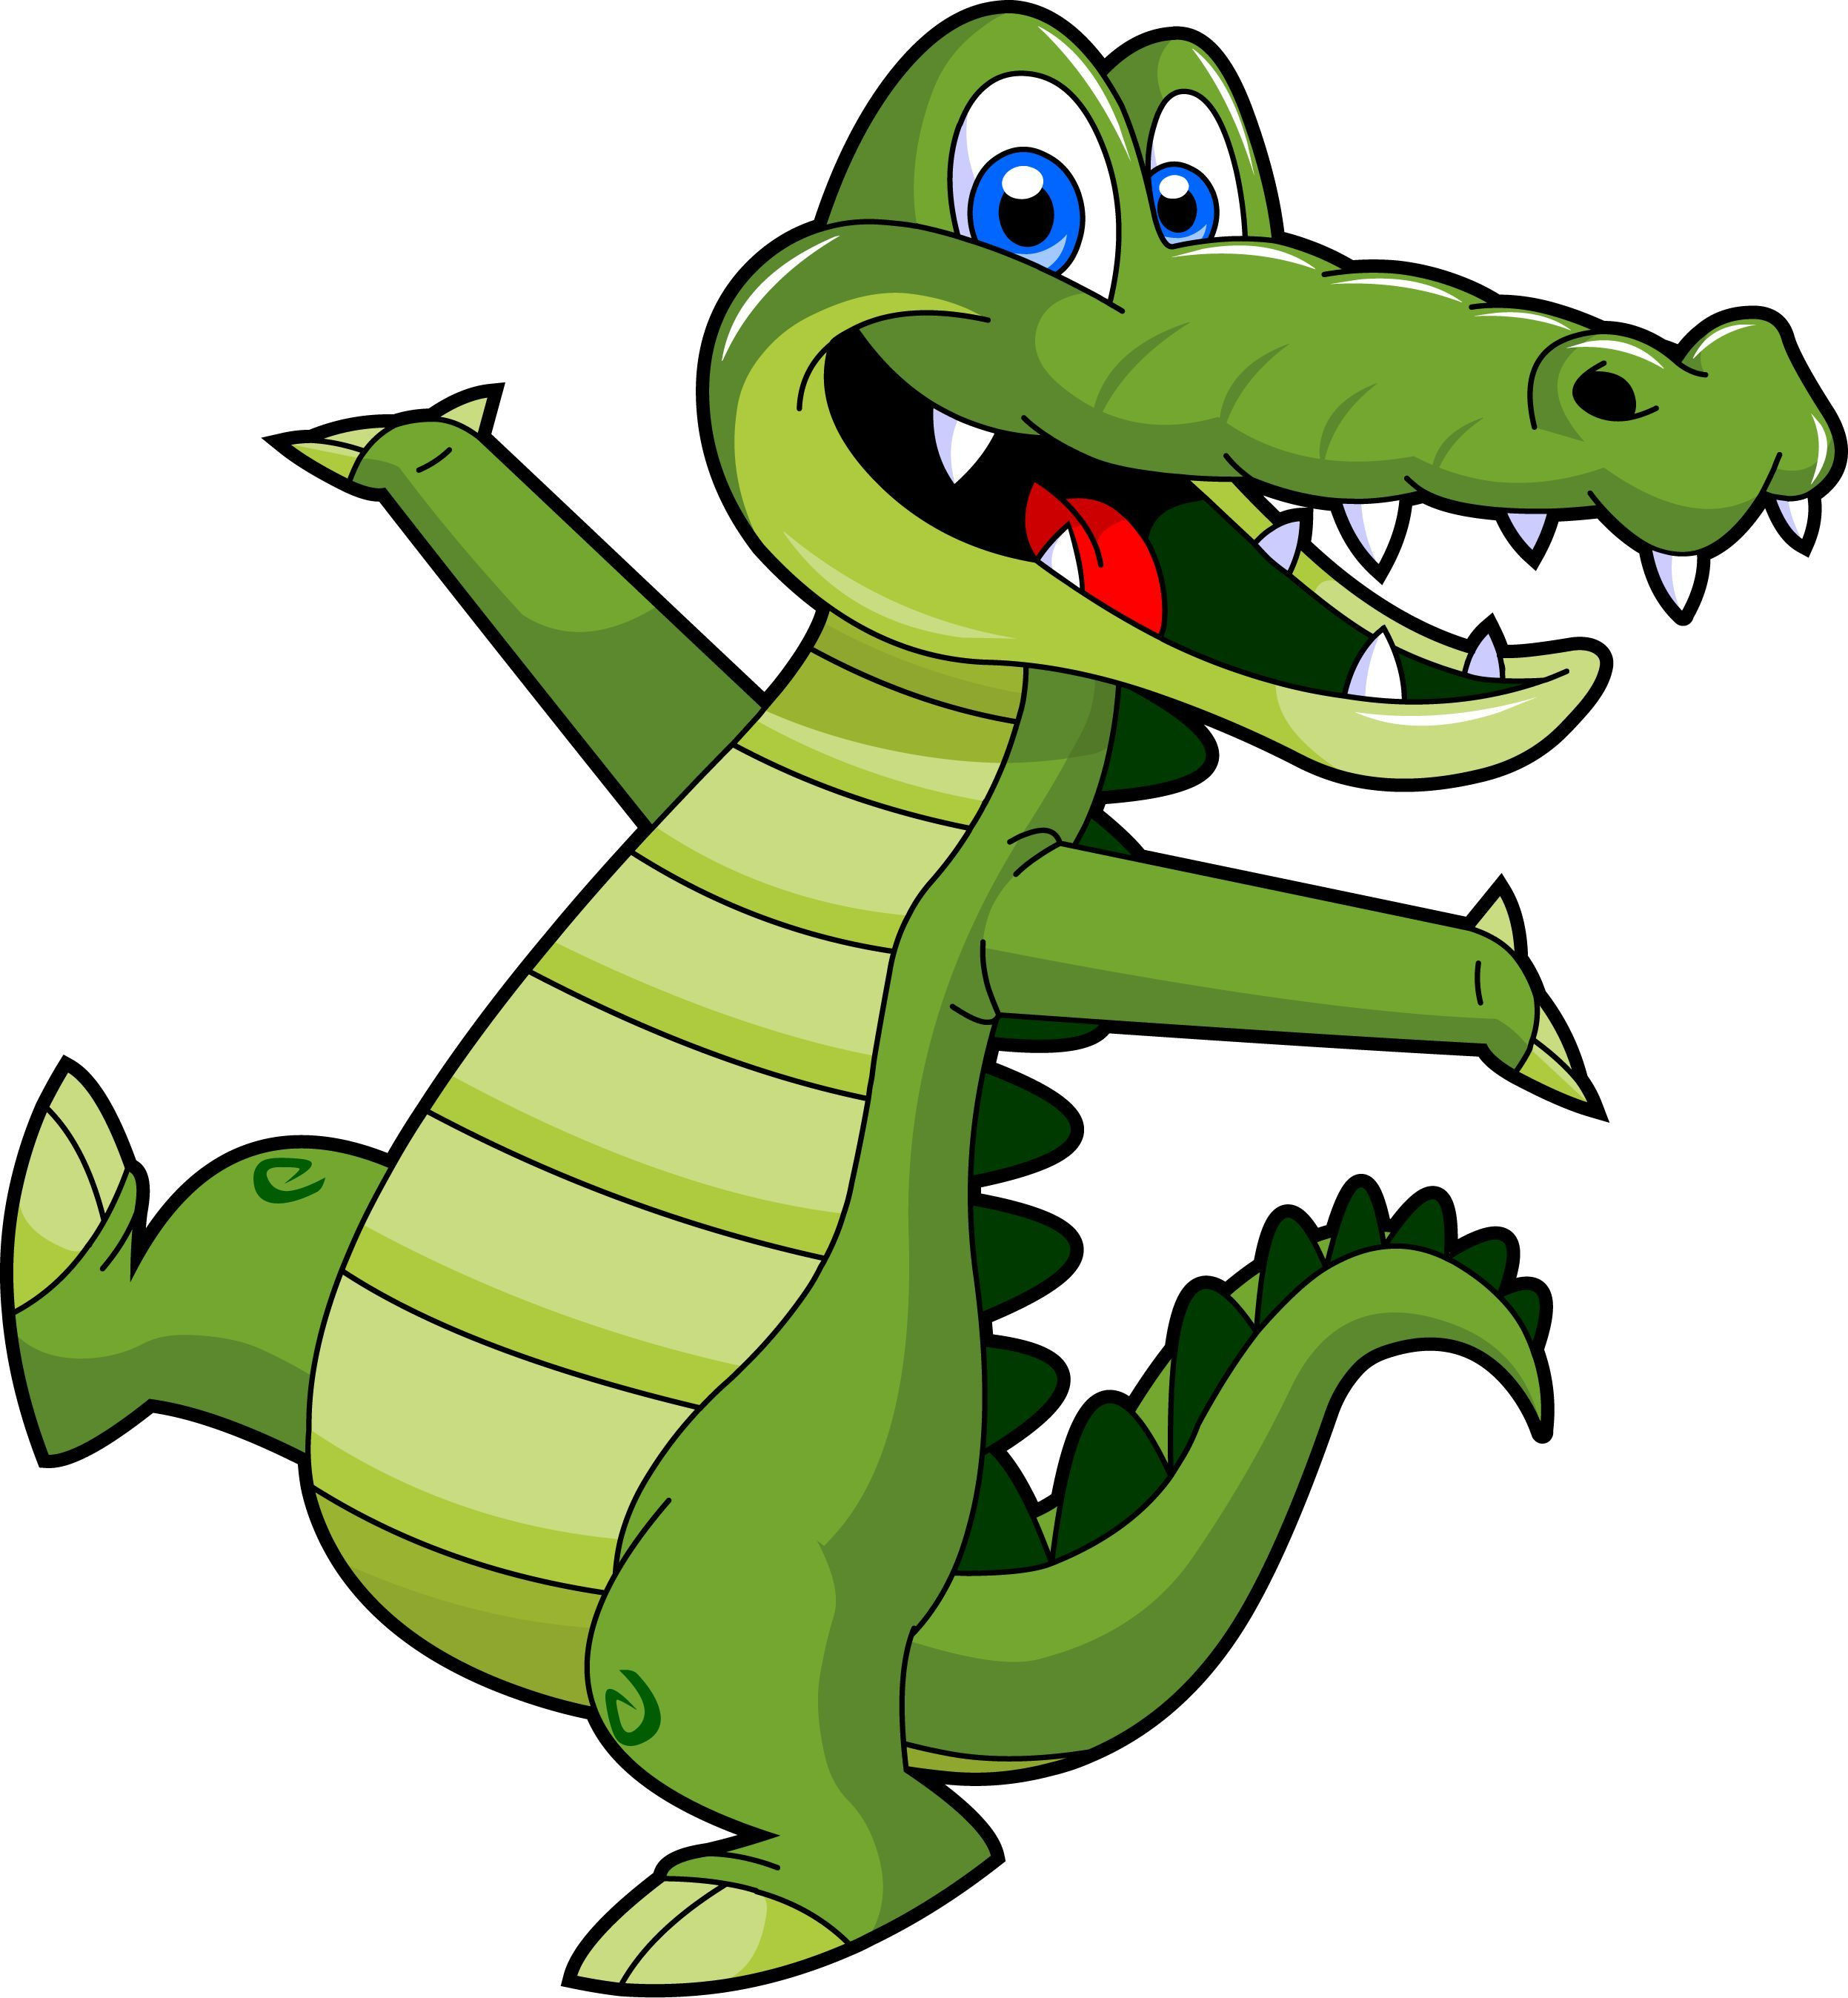 Gator in heartbeat clipart banner royalty free stock Gator clipart good morning - 104 transparent clip arts, images and ... banner royalty free stock